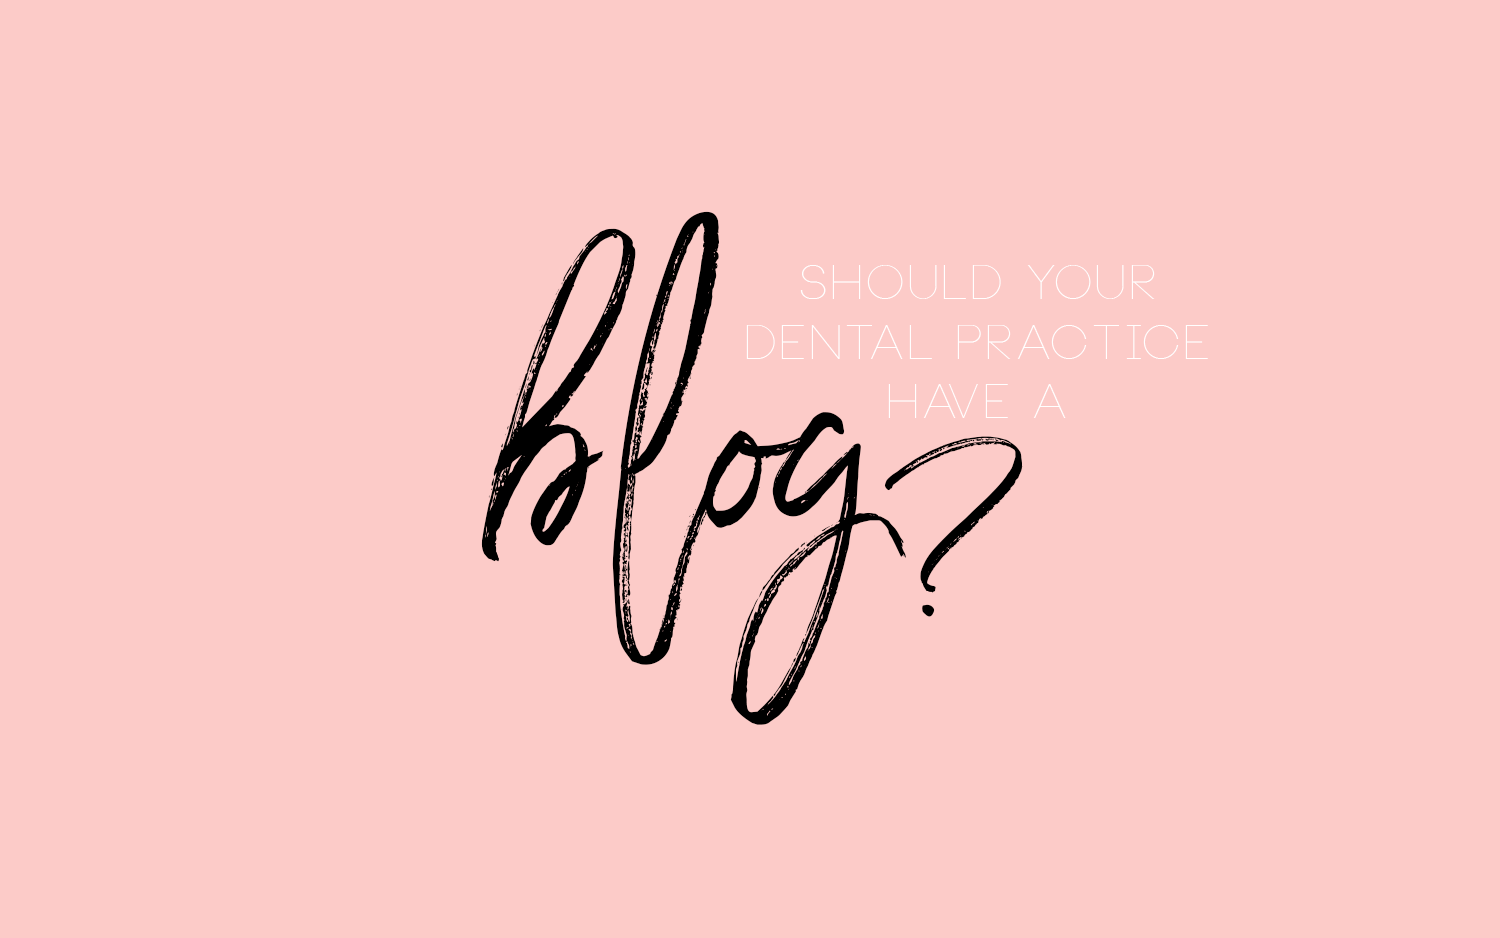 Should Your Dental Practice Have a Blog?